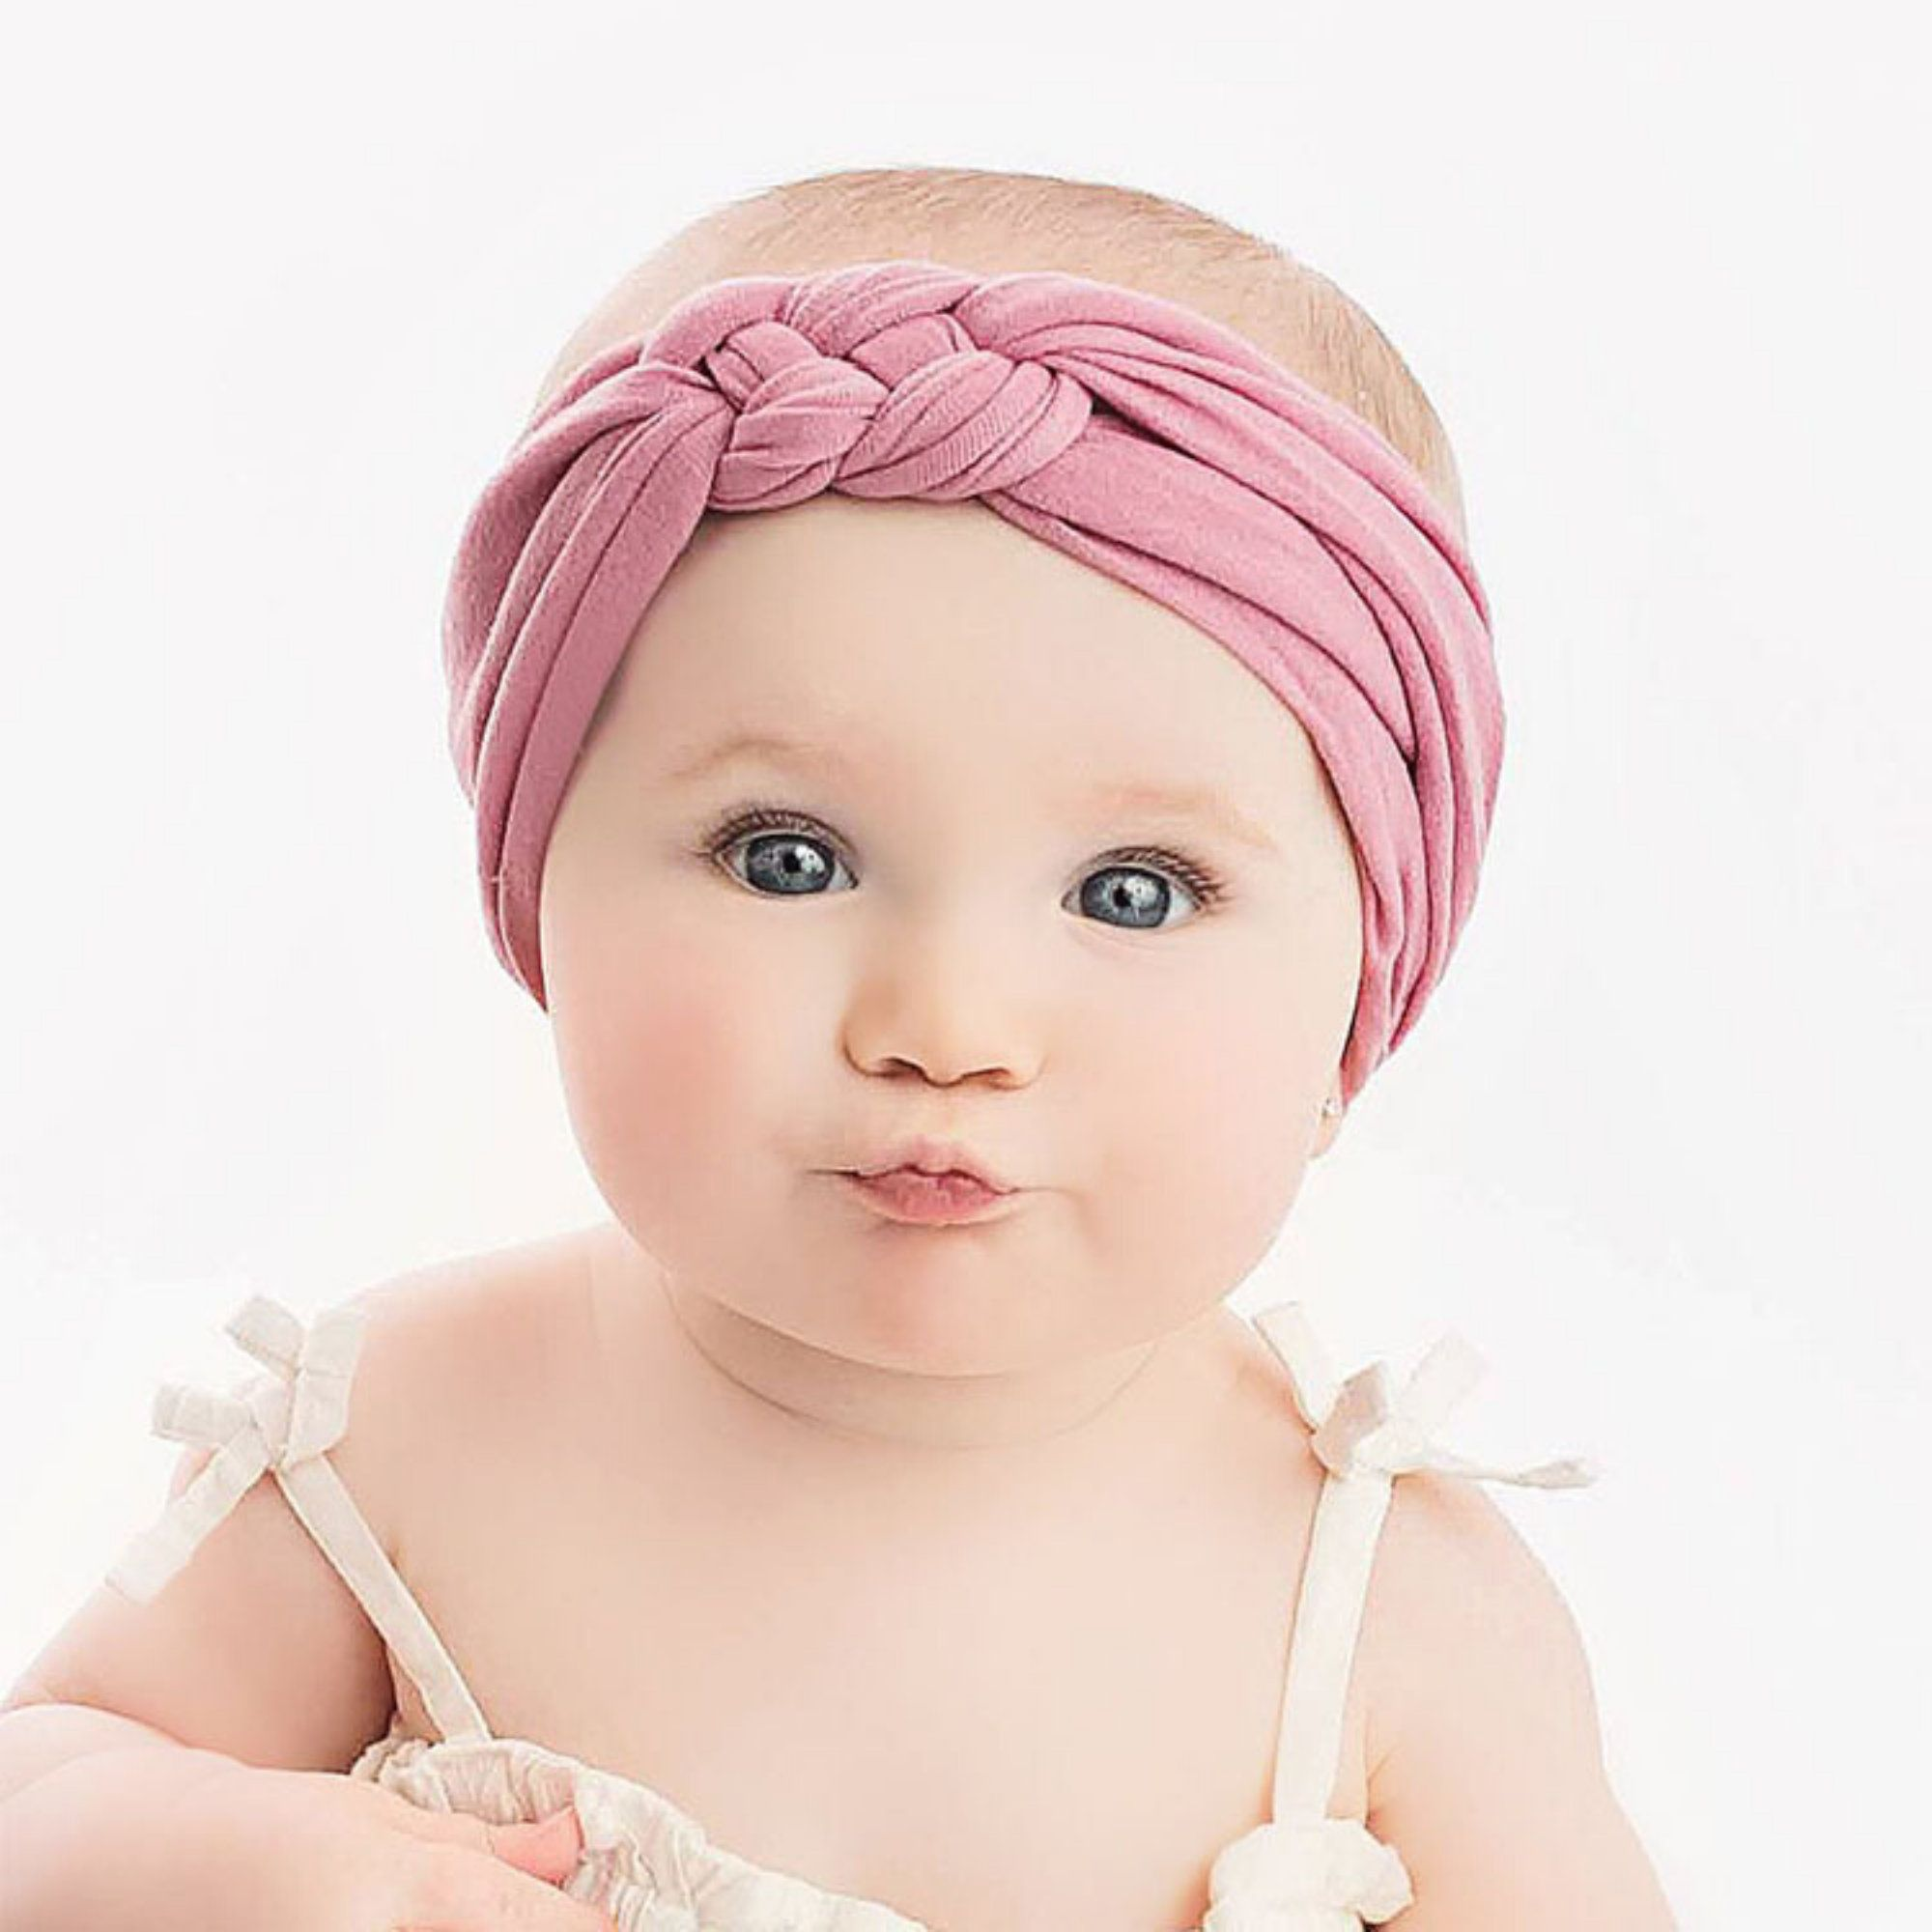 Newborn Girls Baby Turban Knotted Elastic Headbands Wrap Hair Accessories for Infant Toddler